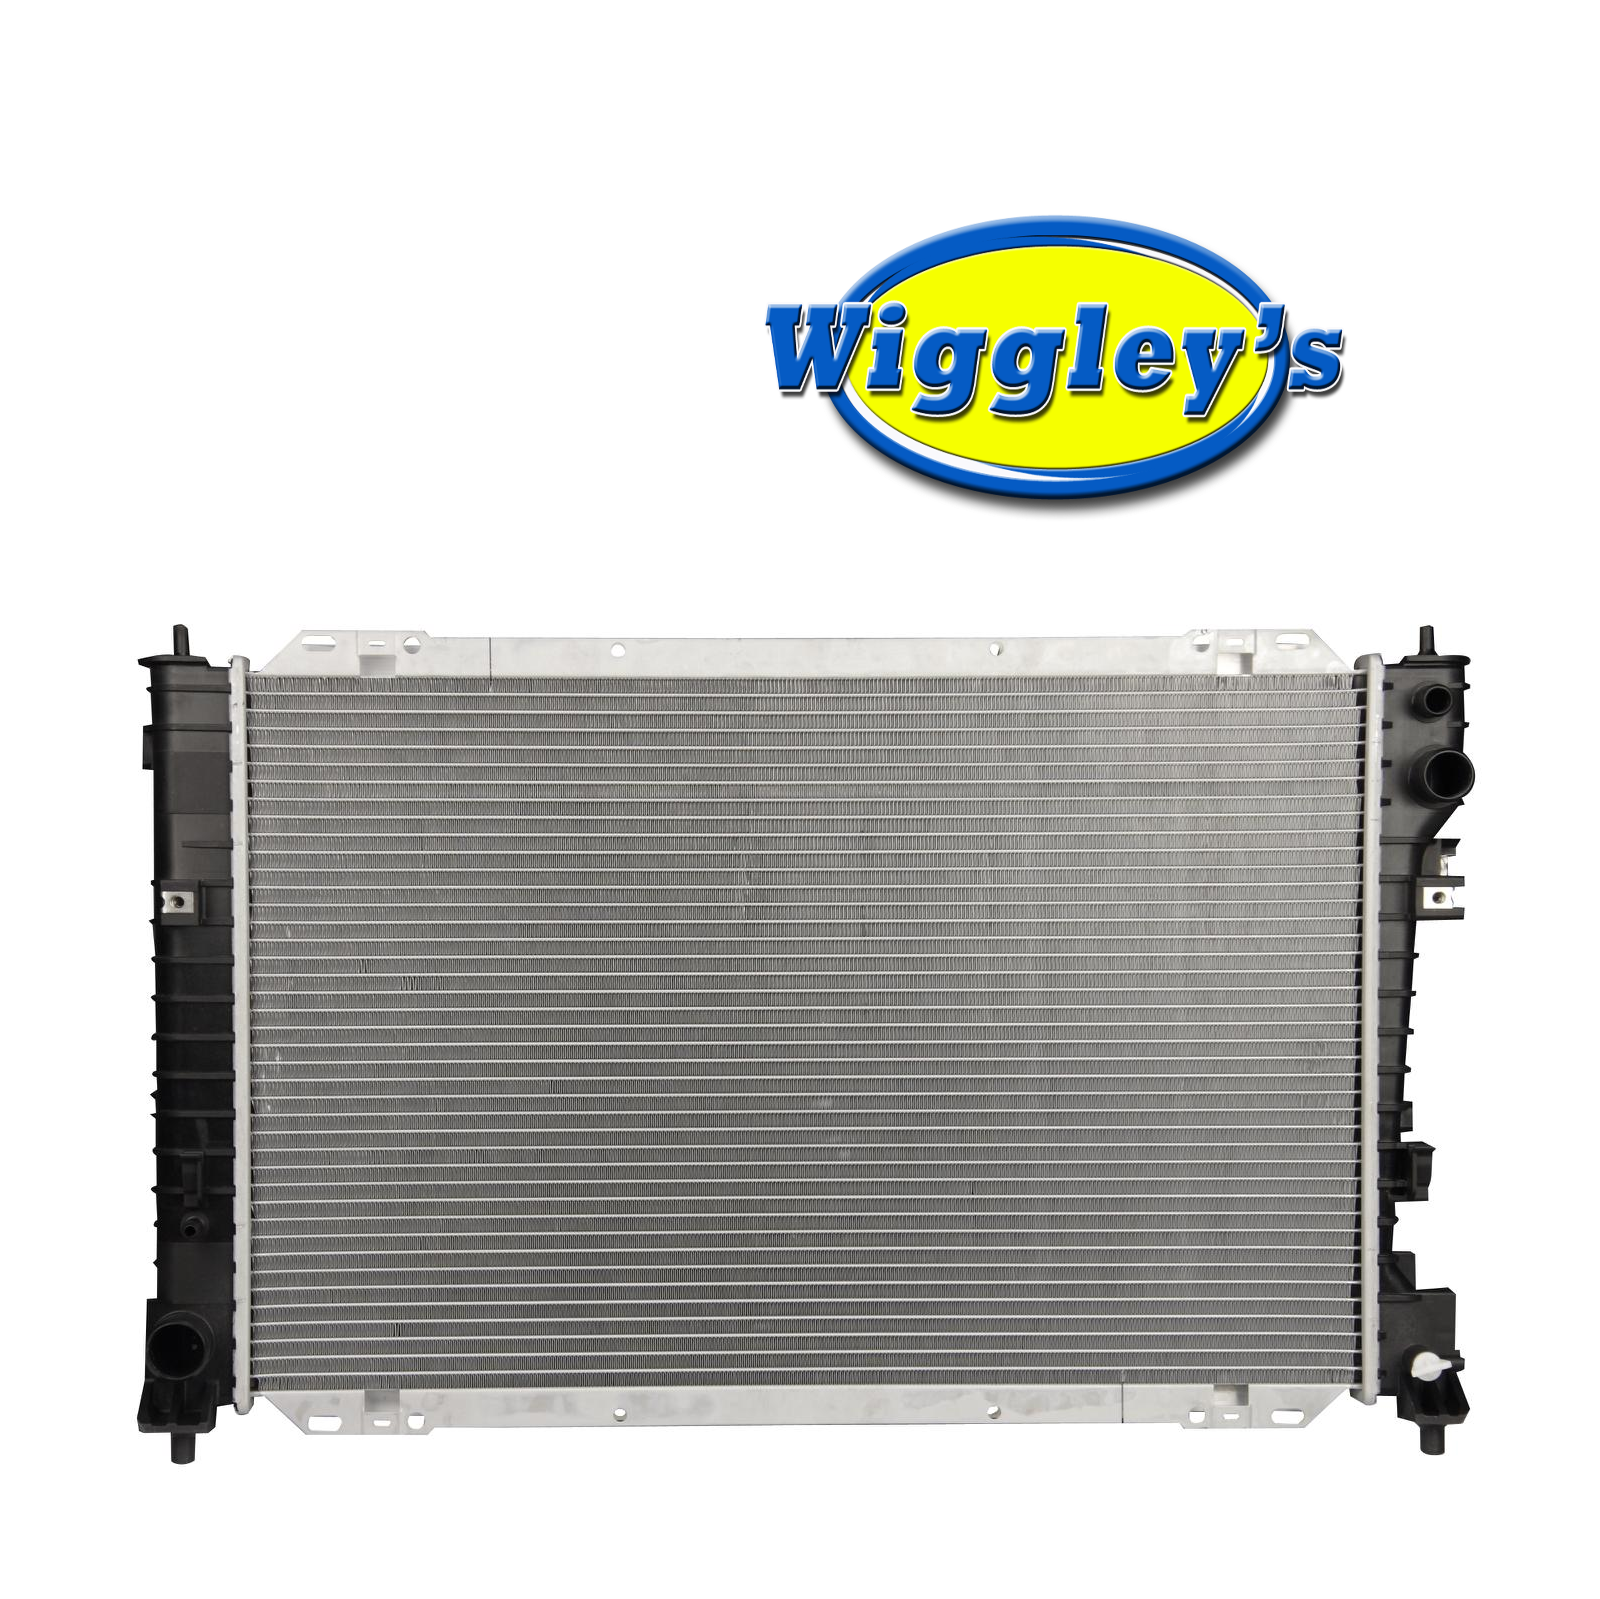 RADIATOR FO3010277 FOR 08-12 MAZDA TRIBUTE MERCURY MARINER 2.3L 2.5L